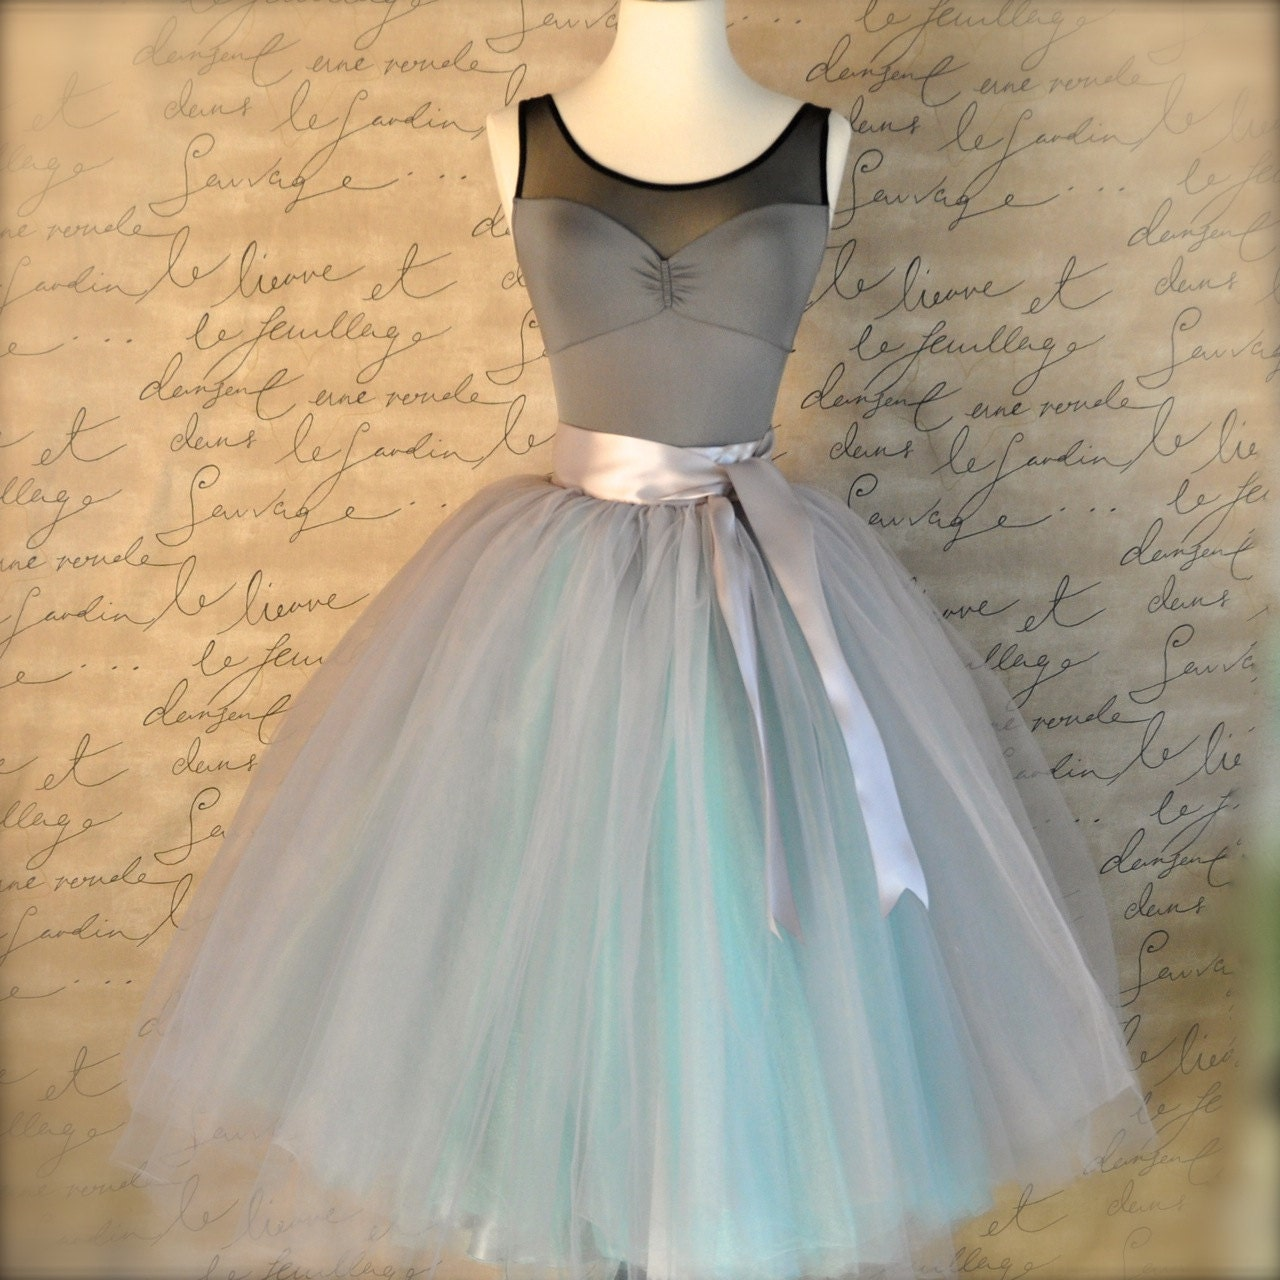 Dove gray and light blue tutu skirt for women. Ballet